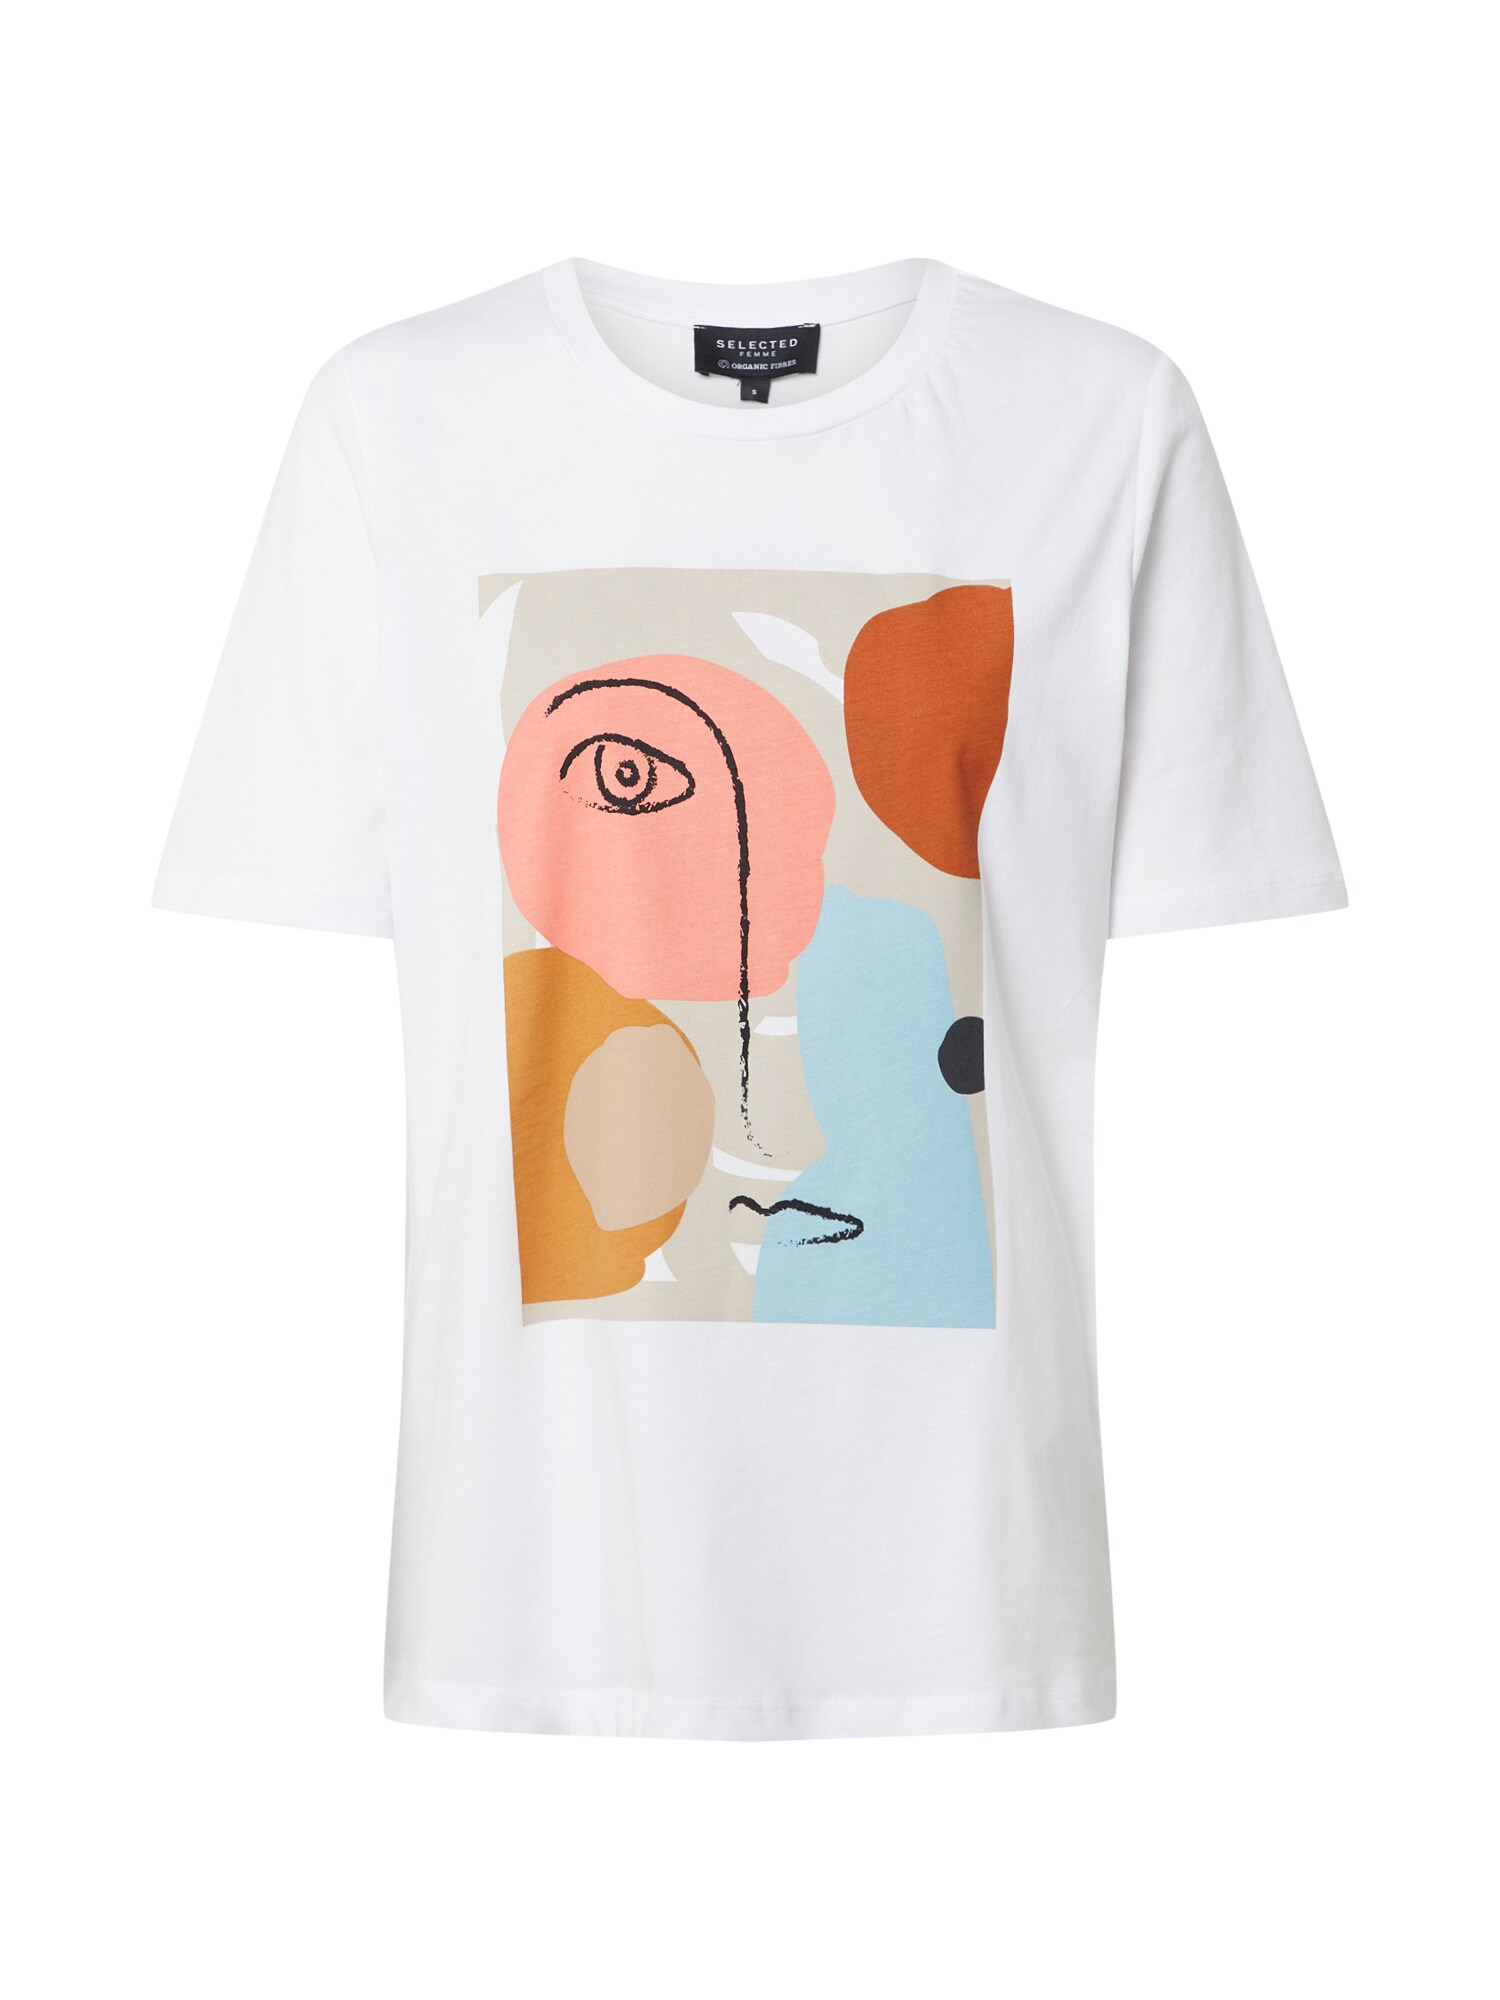 SELECTED FEMME Tričko Abstract Face mix barev bílá Selected Femme